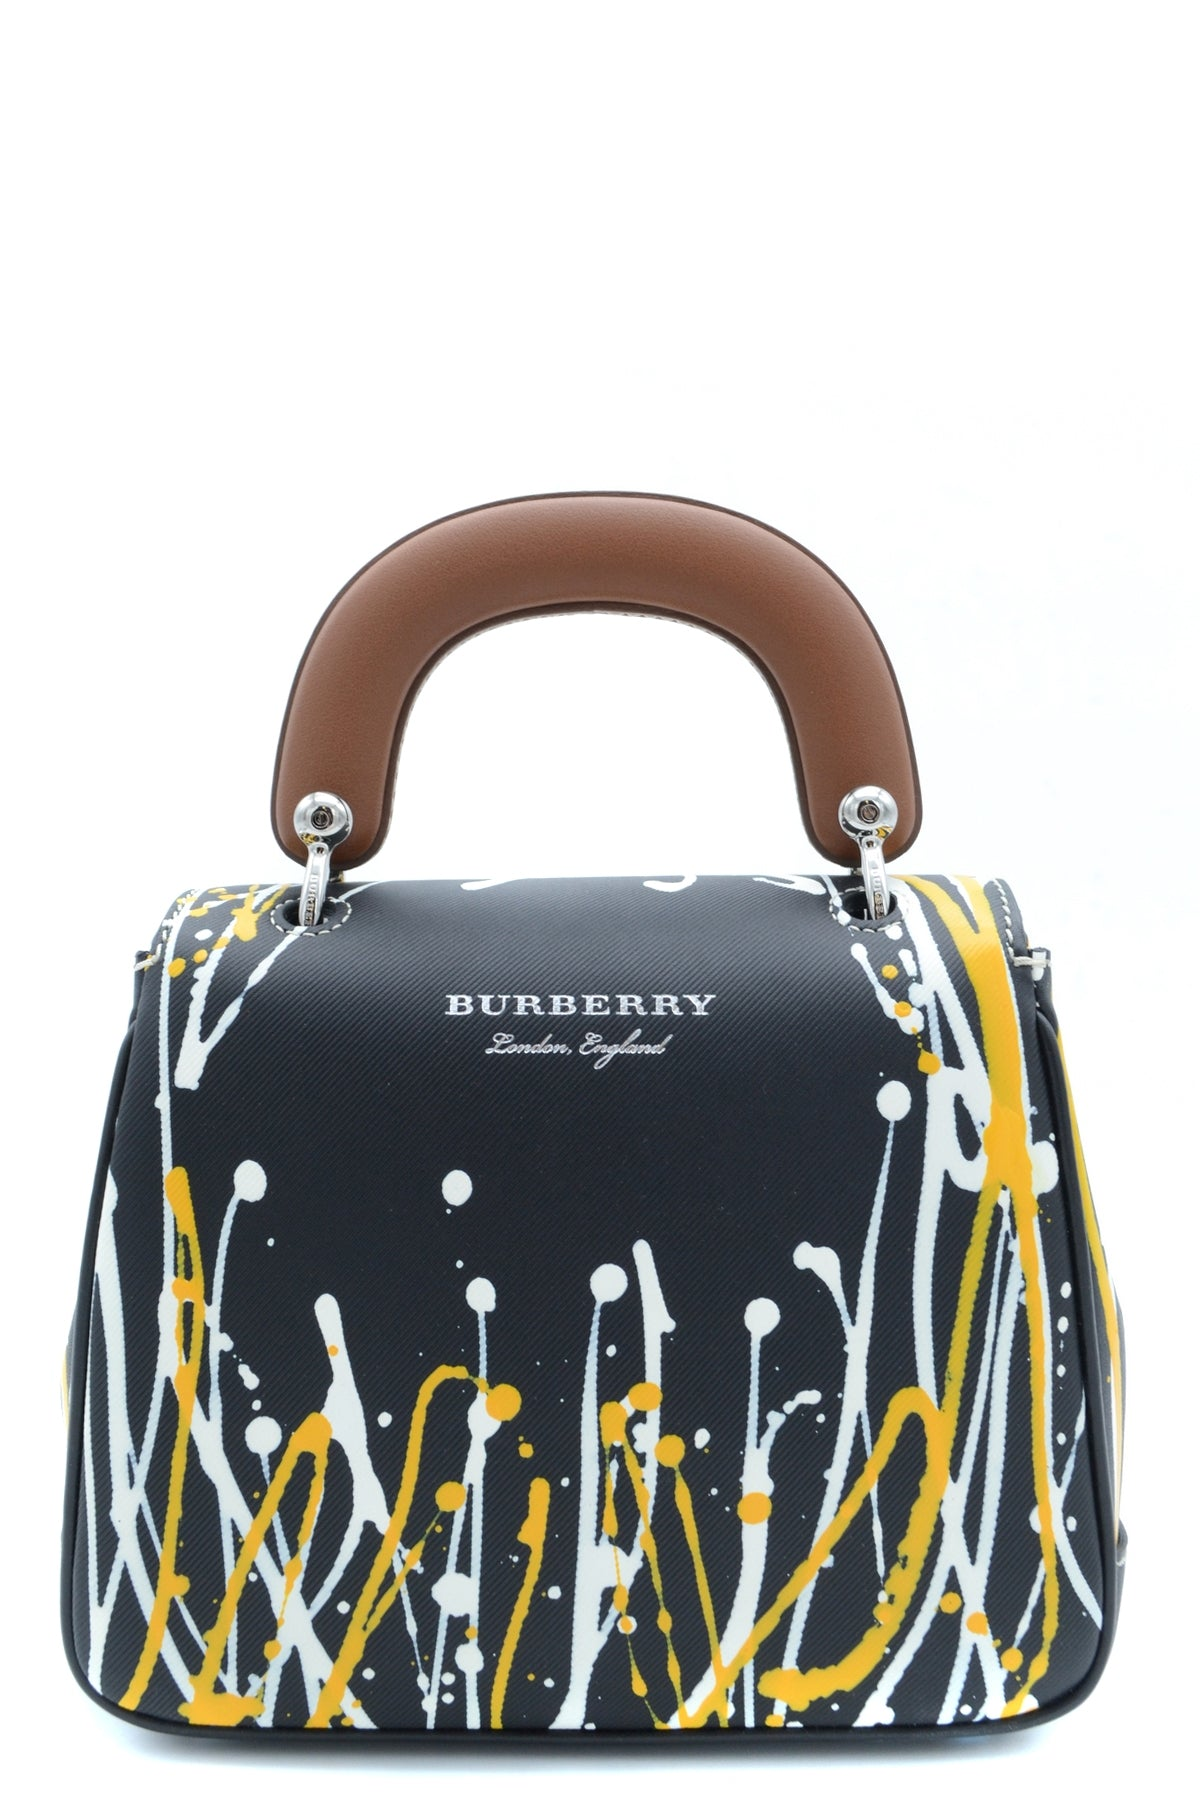 Bag Burberry-Bags - WOMAN-Product Details Type Of Accessory: HandbagSeason: Spring / SummerMade In: ItalyTerms: New With LabelMain Color: BlackGender: WomanYear: 2018Manufacturer Part Number: 4068517 1Size: IntBag Wxhxd (Cm): 22X19X8Composition: Leather 100%-Keyomi-Sook